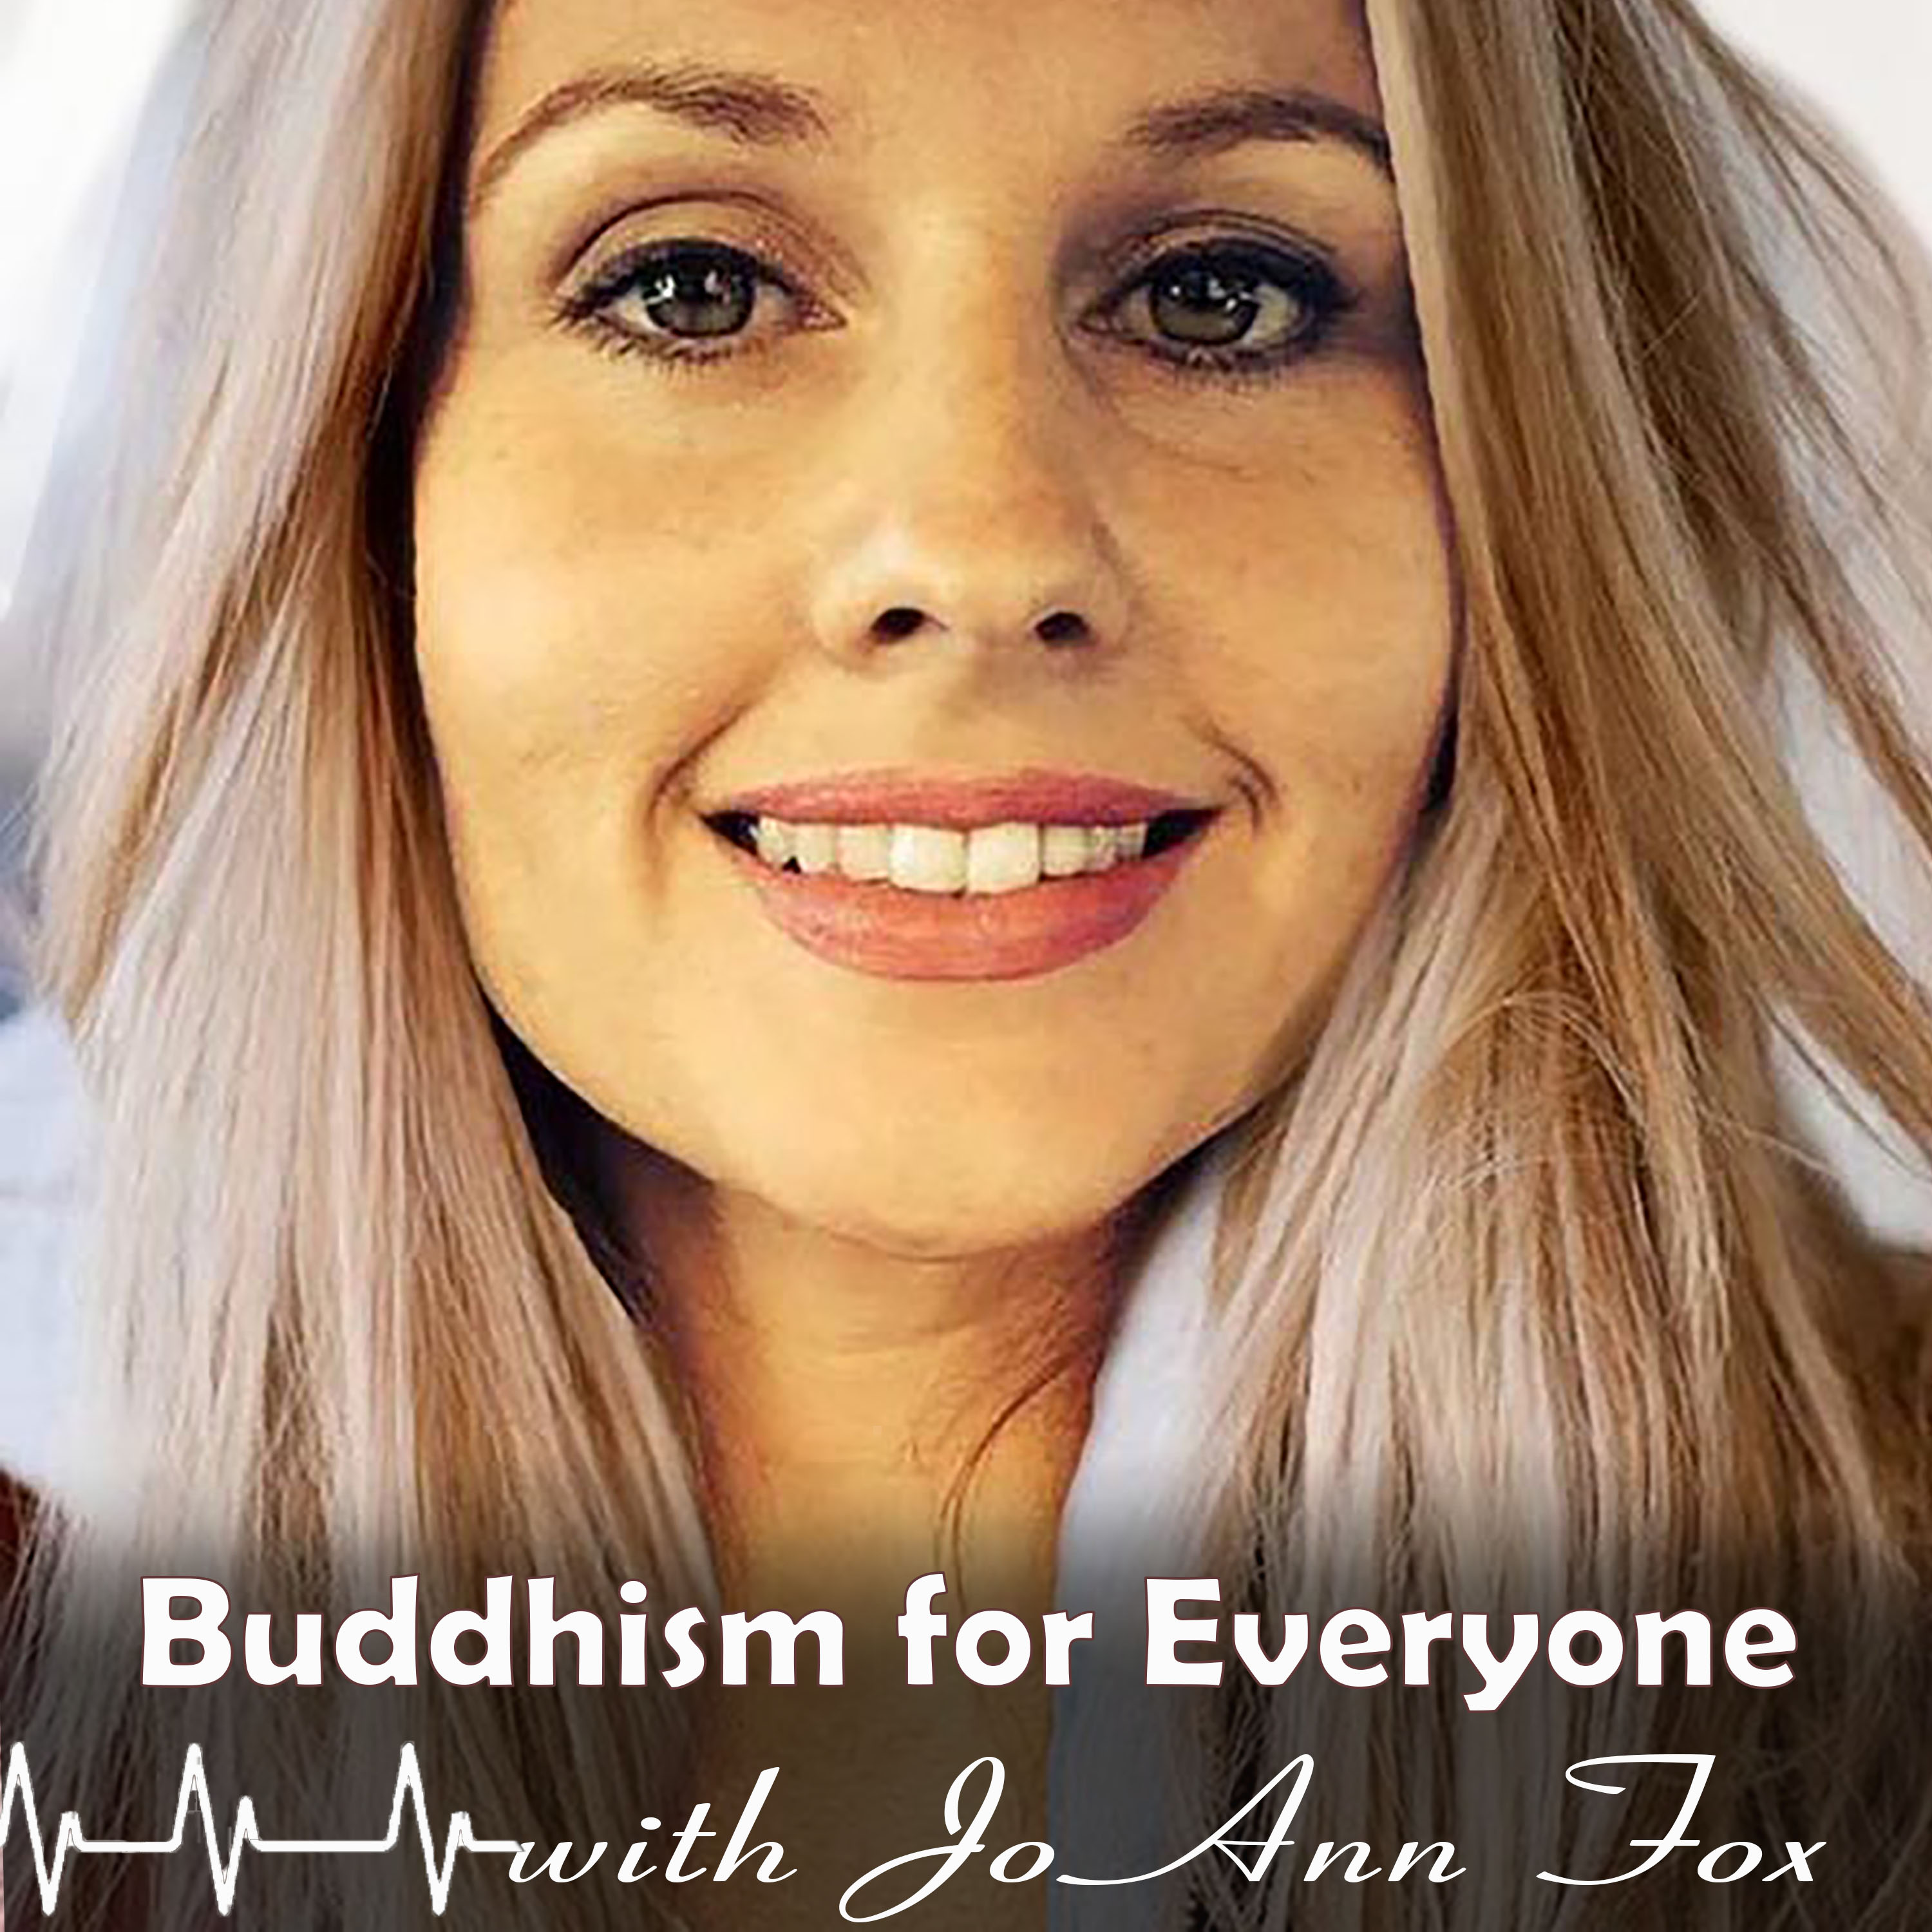 Buddhism for Everyone with JoAnn Fox show art